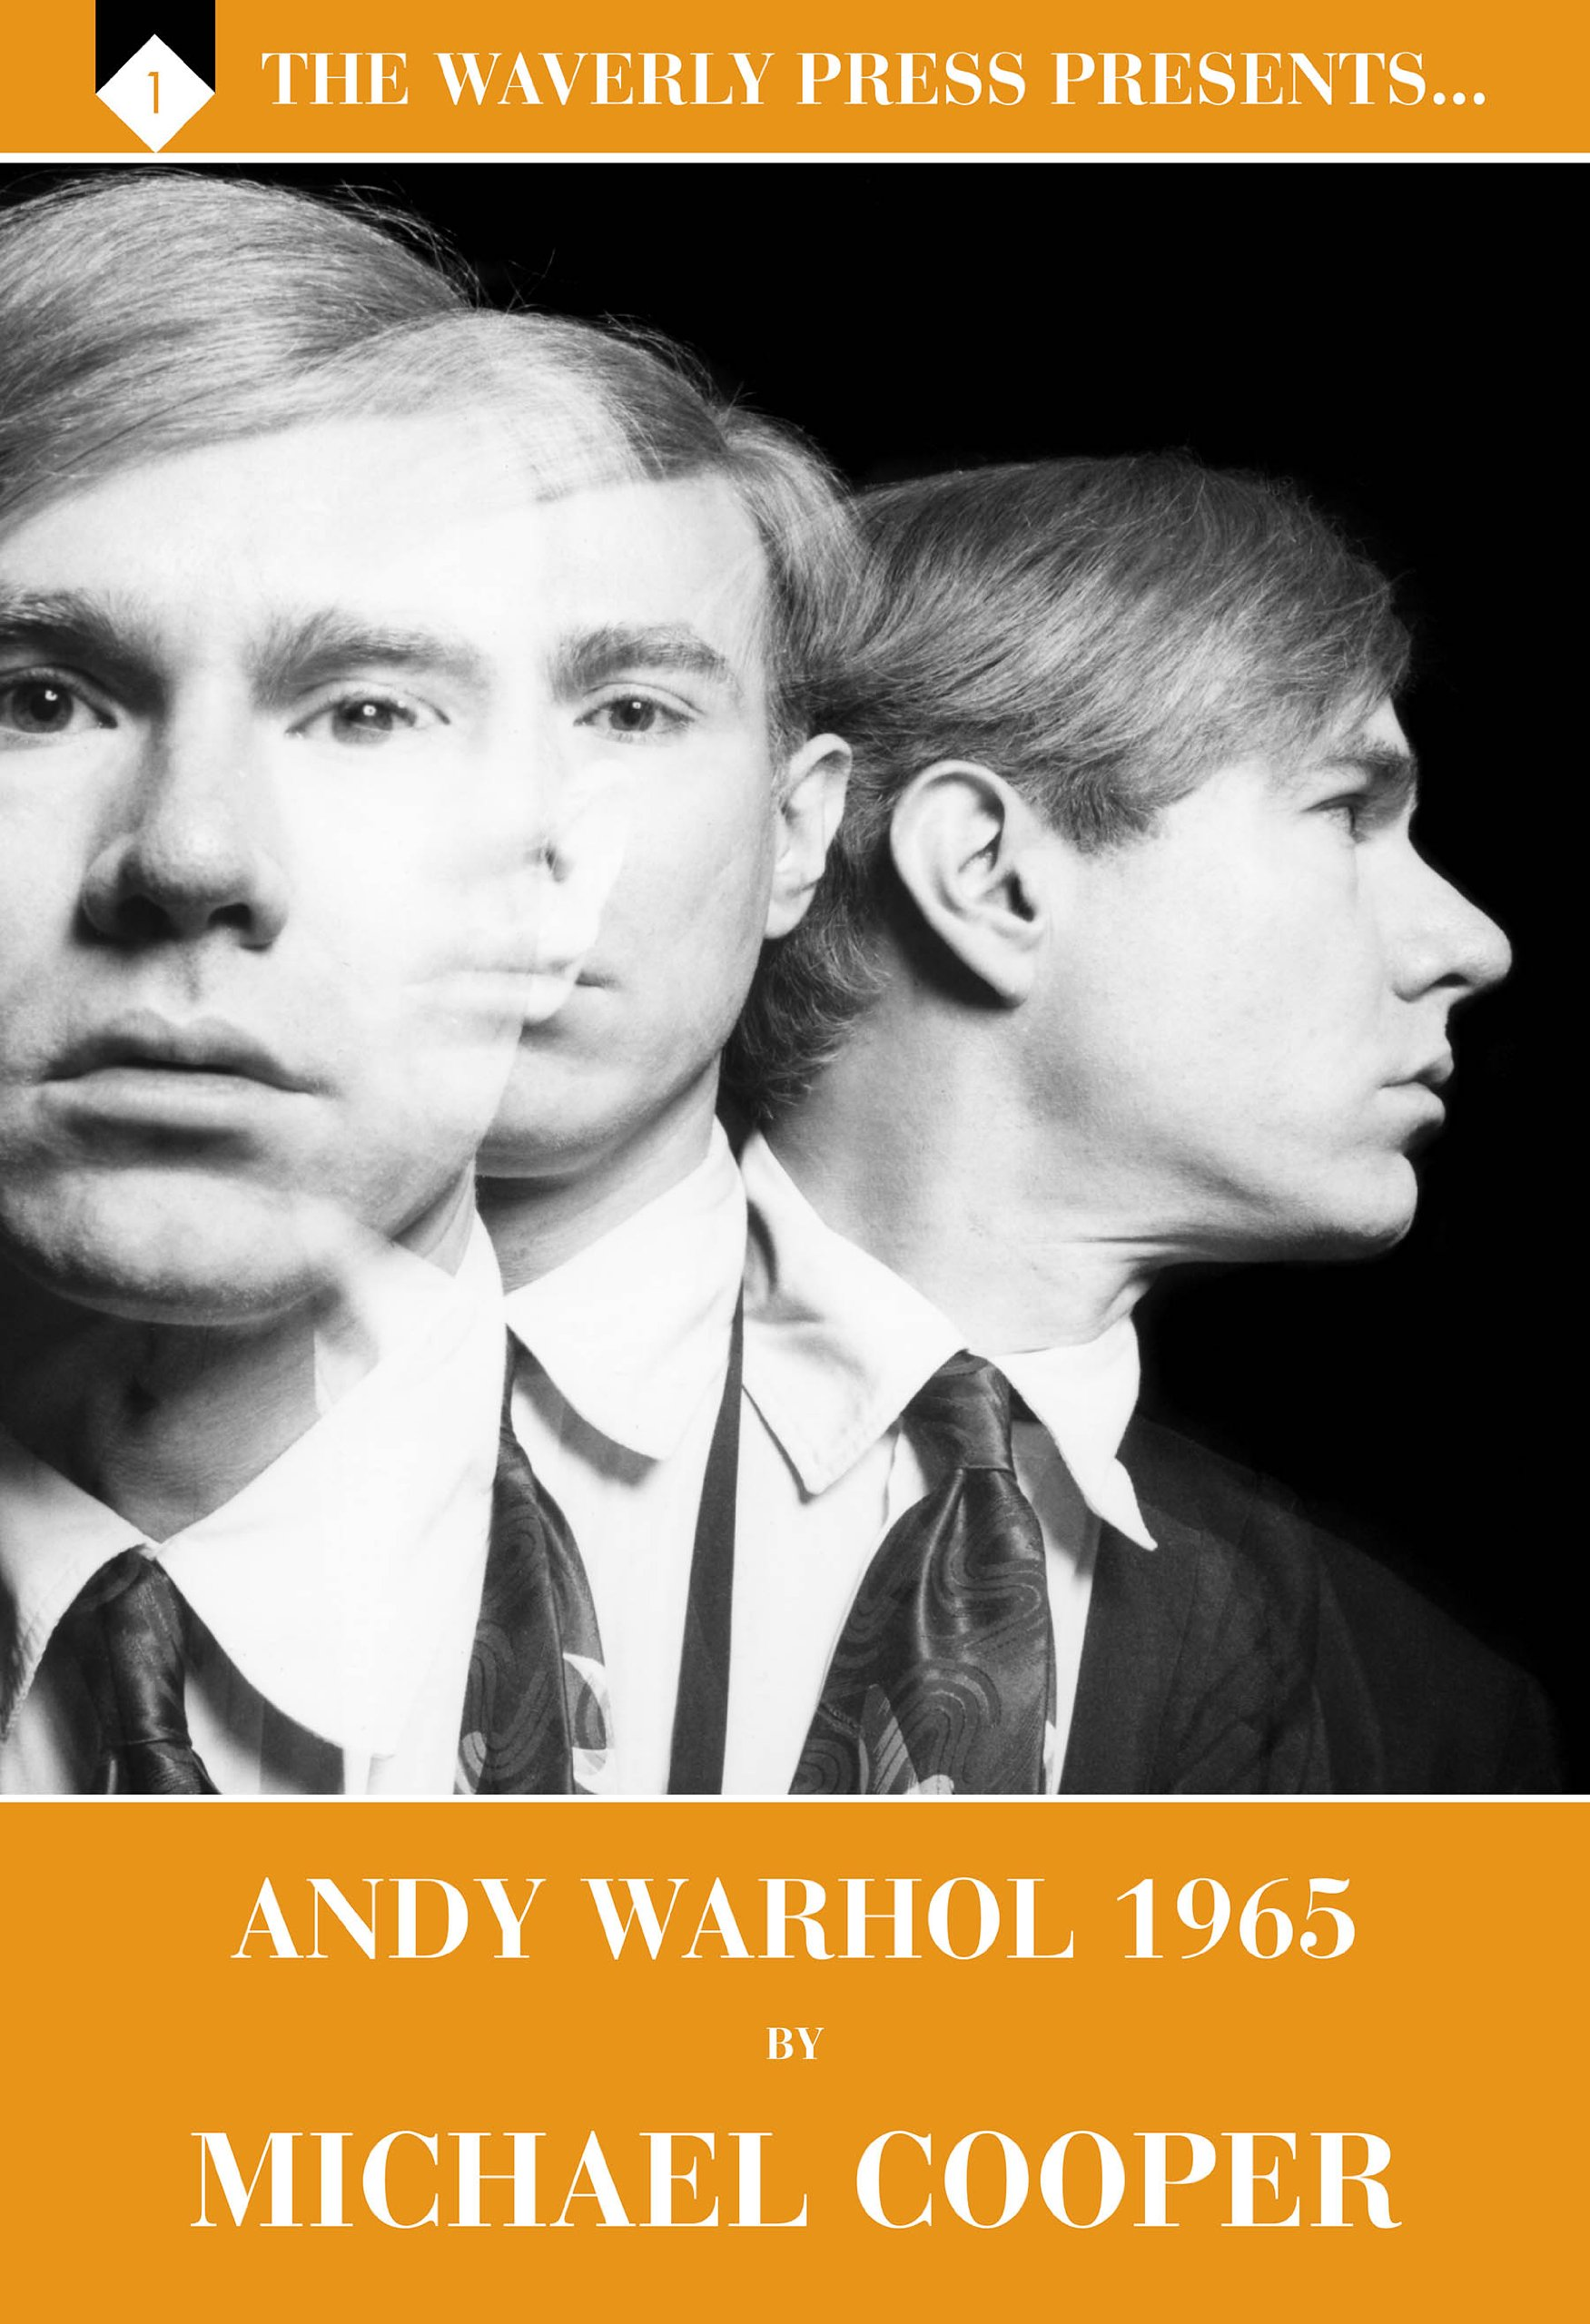 andy warhol 1965 by michael cooper the waverly press presents volume 1